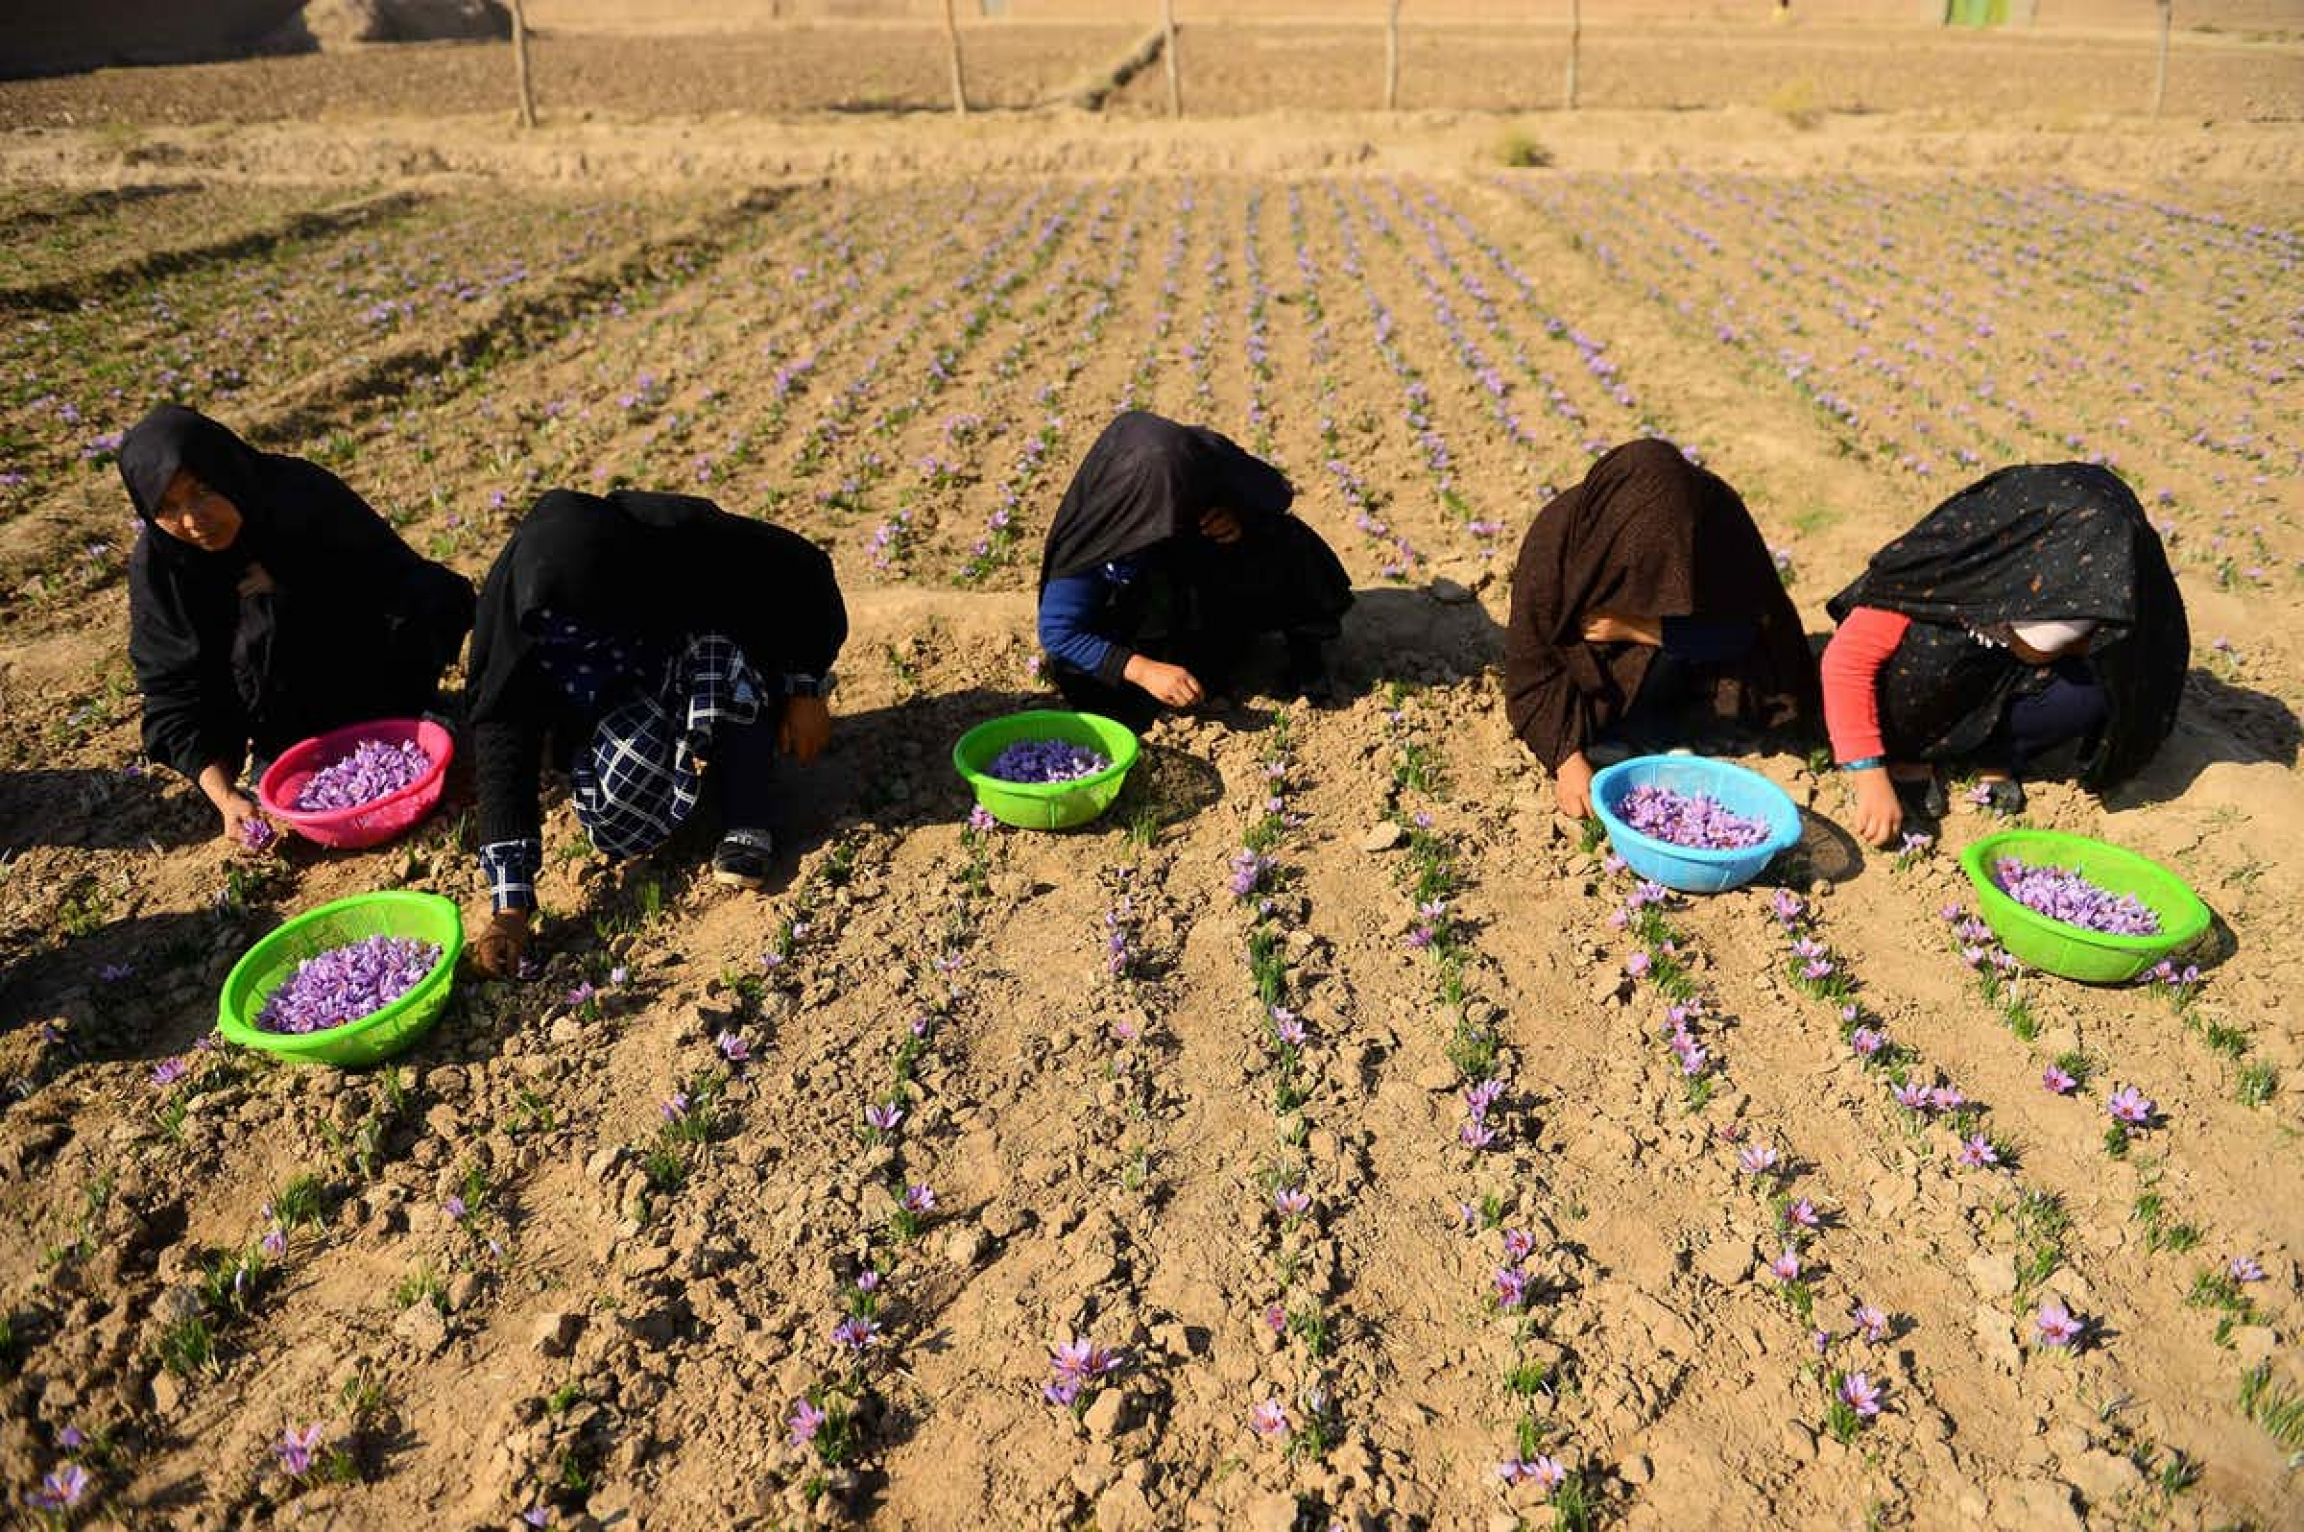 Afghan women harvest saffron flowers in a field on the outskirts of Herat Province in 2018. The region has been suffering a drought for years.